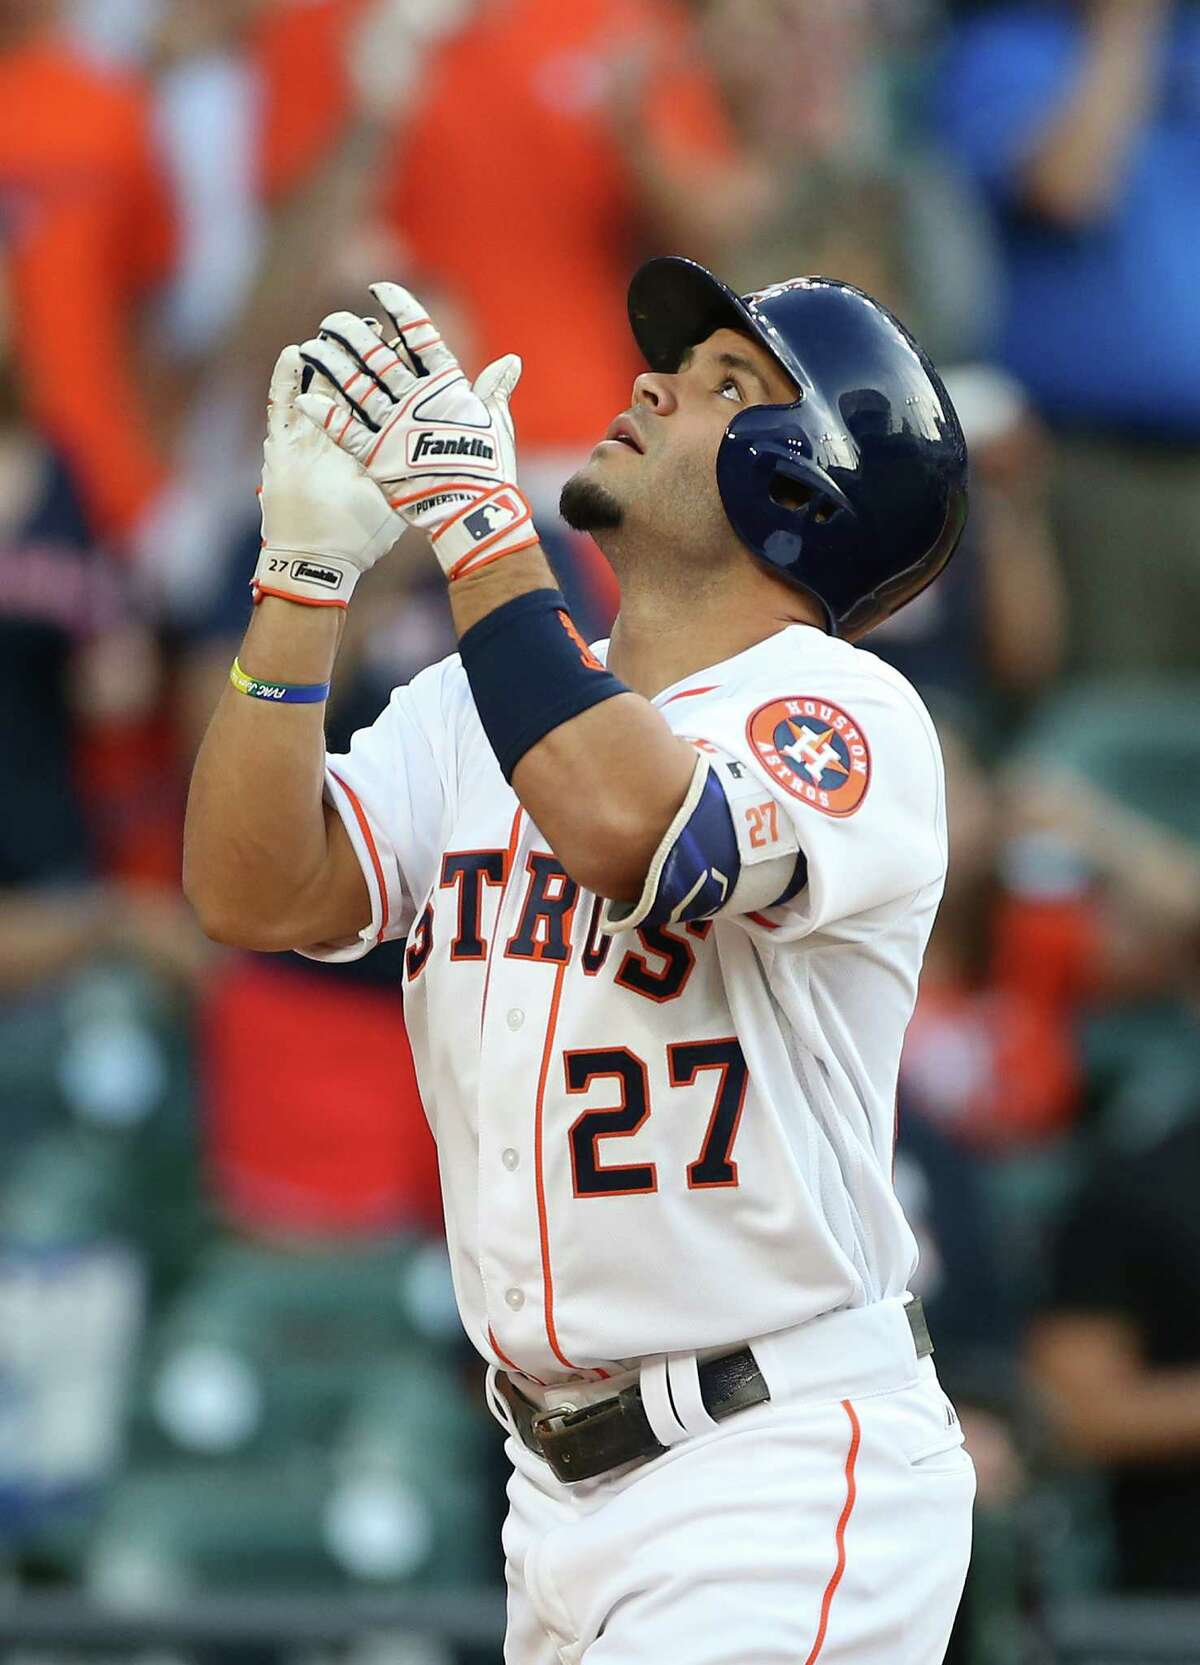 Houston Astros second baseman Jose Altuve (27) reacts as he crosses home plate after hitting a home run in the first inning. Photos of game one between Houston Astros and Seattle Mariners at Minute Maid Stadium on Thursday, May 5, 2016, in Houston. ( Elizabeth Conley / Houston Chronicle )